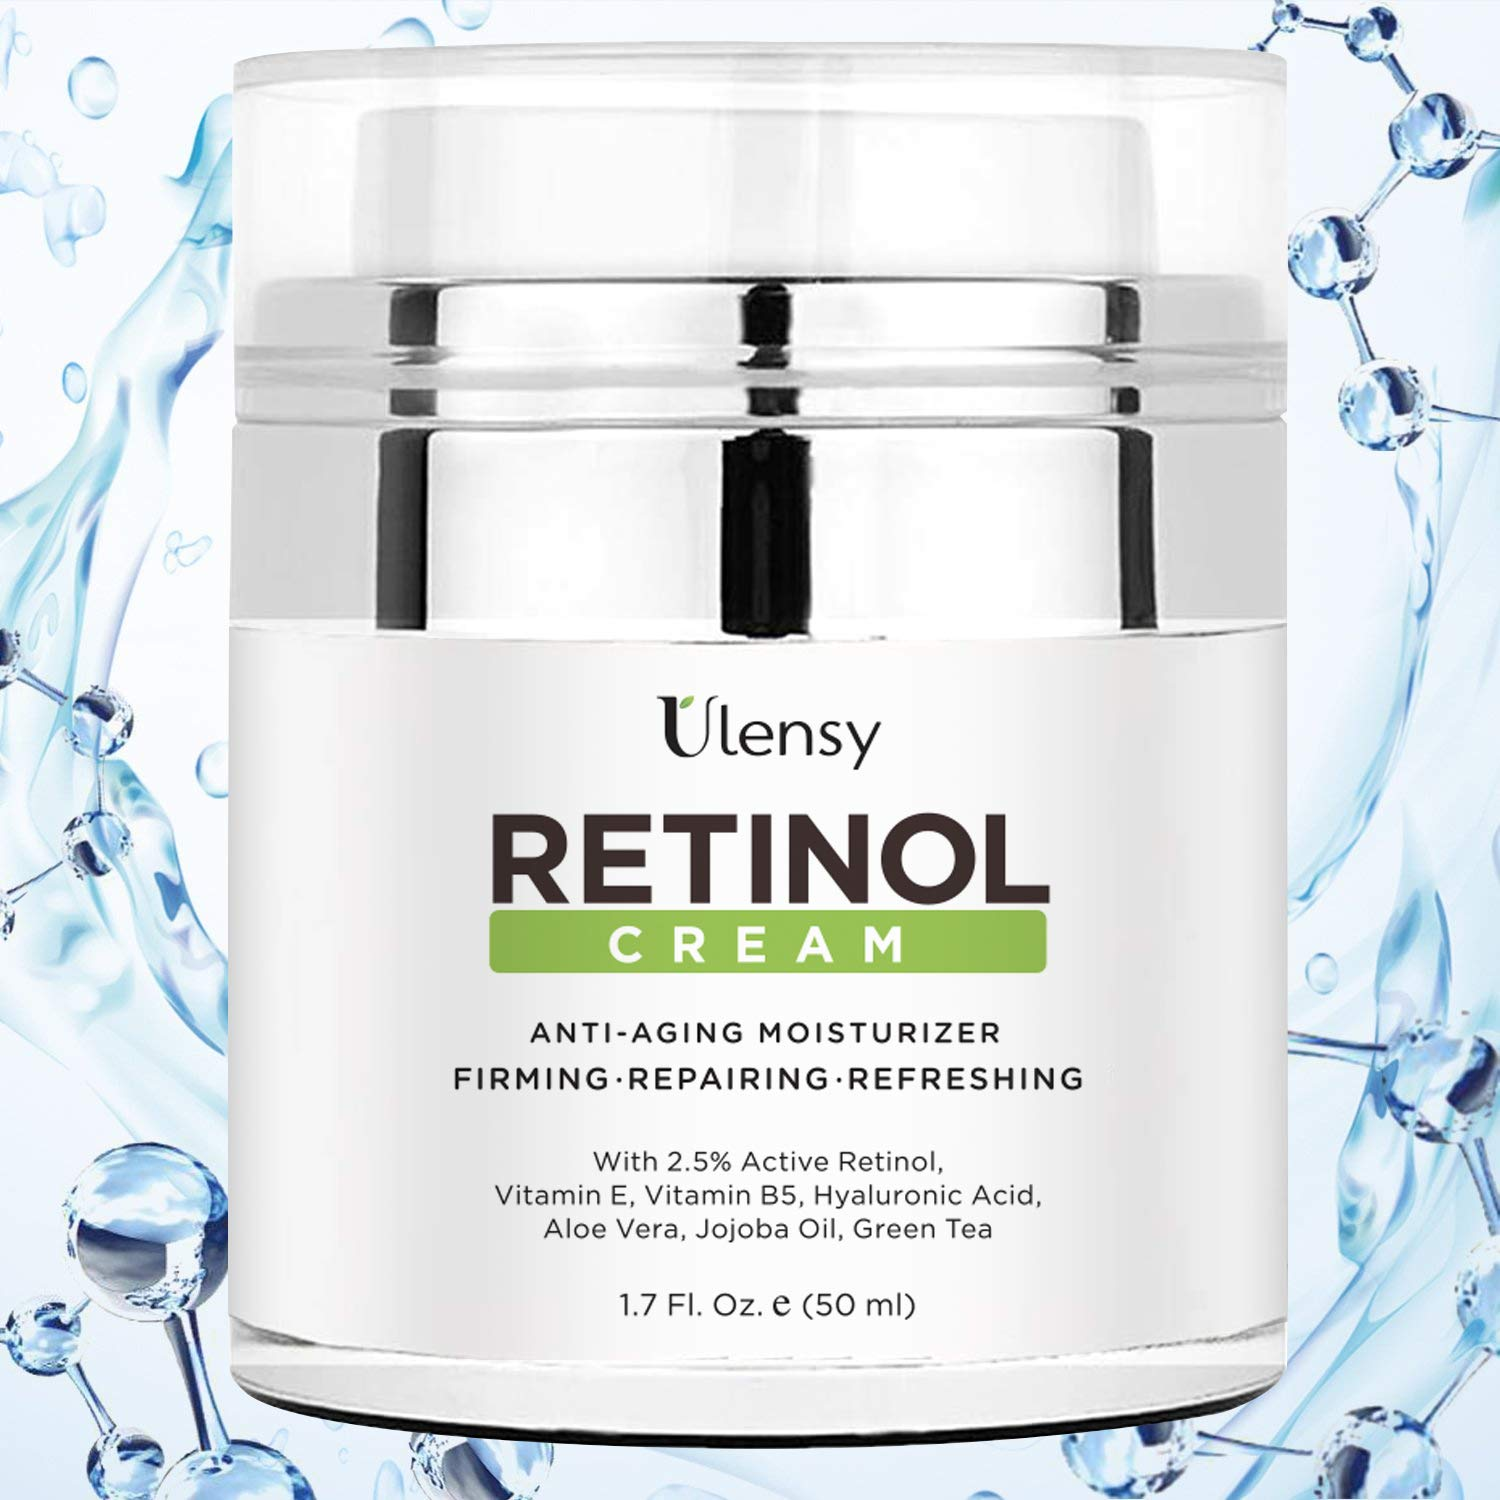 Ulensy Upgraded Retinol Face Cream, Miracle Moisturizing Face Cream, Best Retinol Face Cream for Beautiful Face by Ulensy